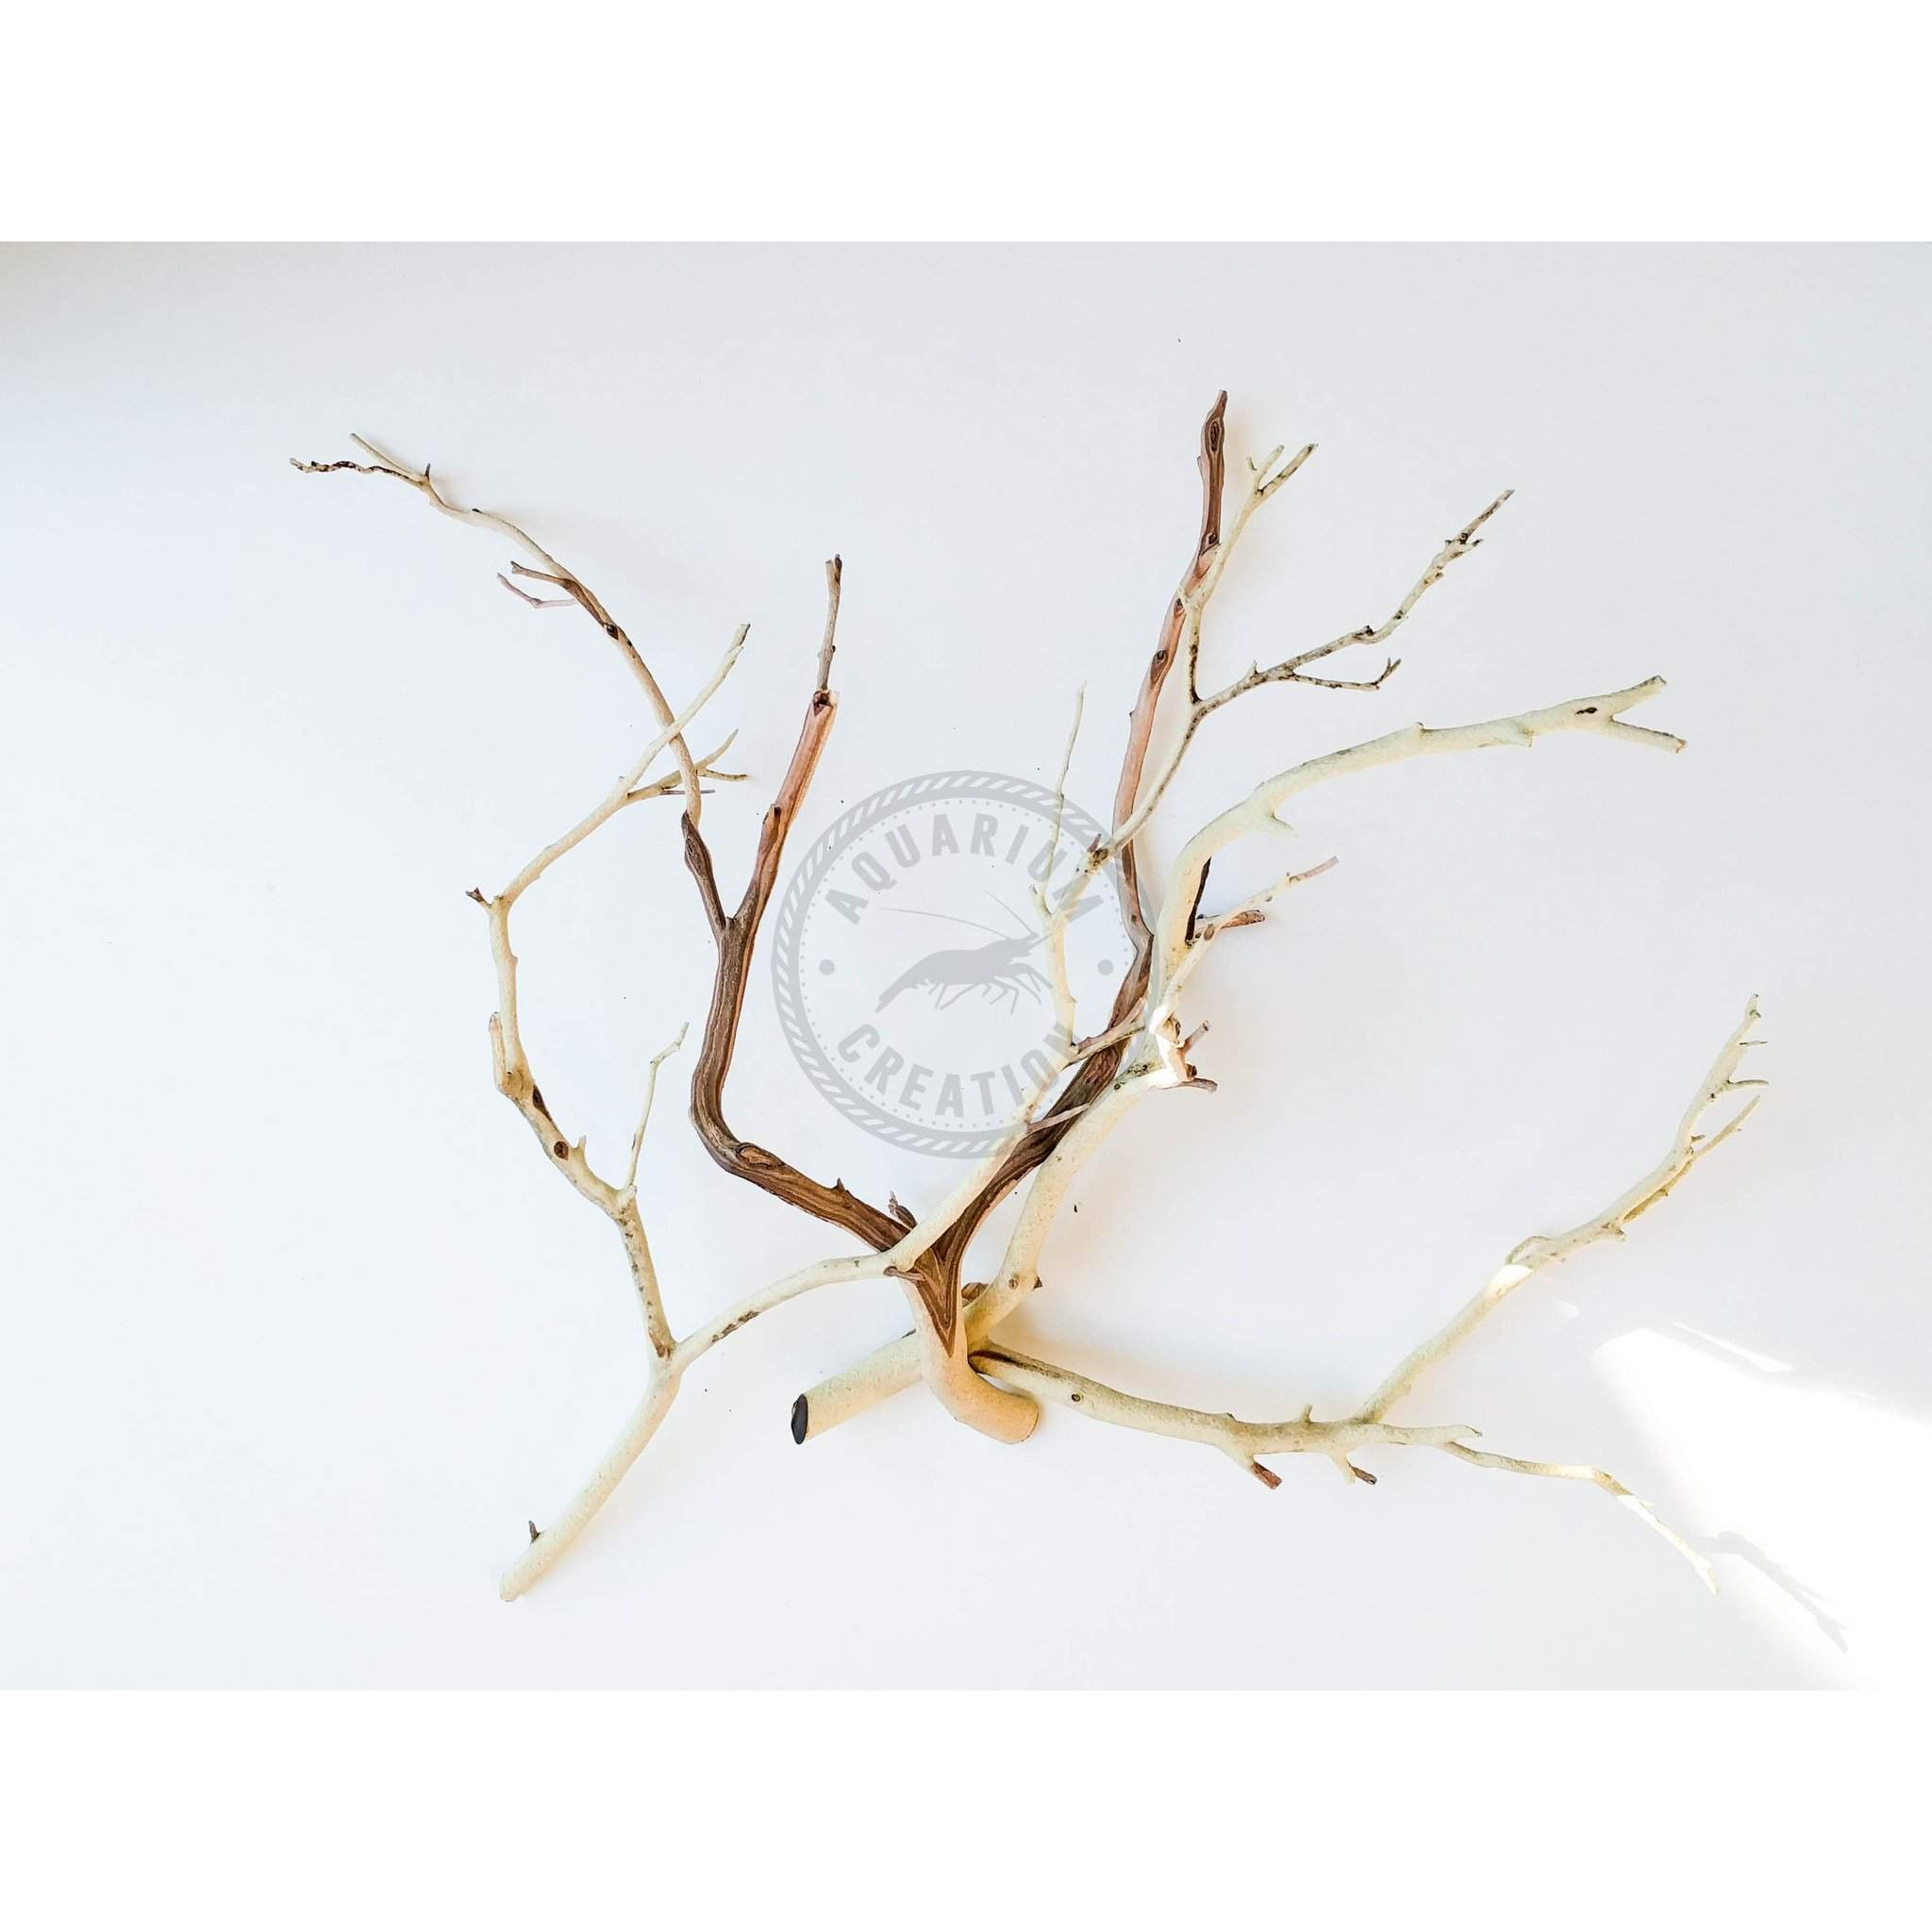 Starter Pack - Manzanita Driftwood - Woods, Leaves, Natural Products - Aquarium Creation